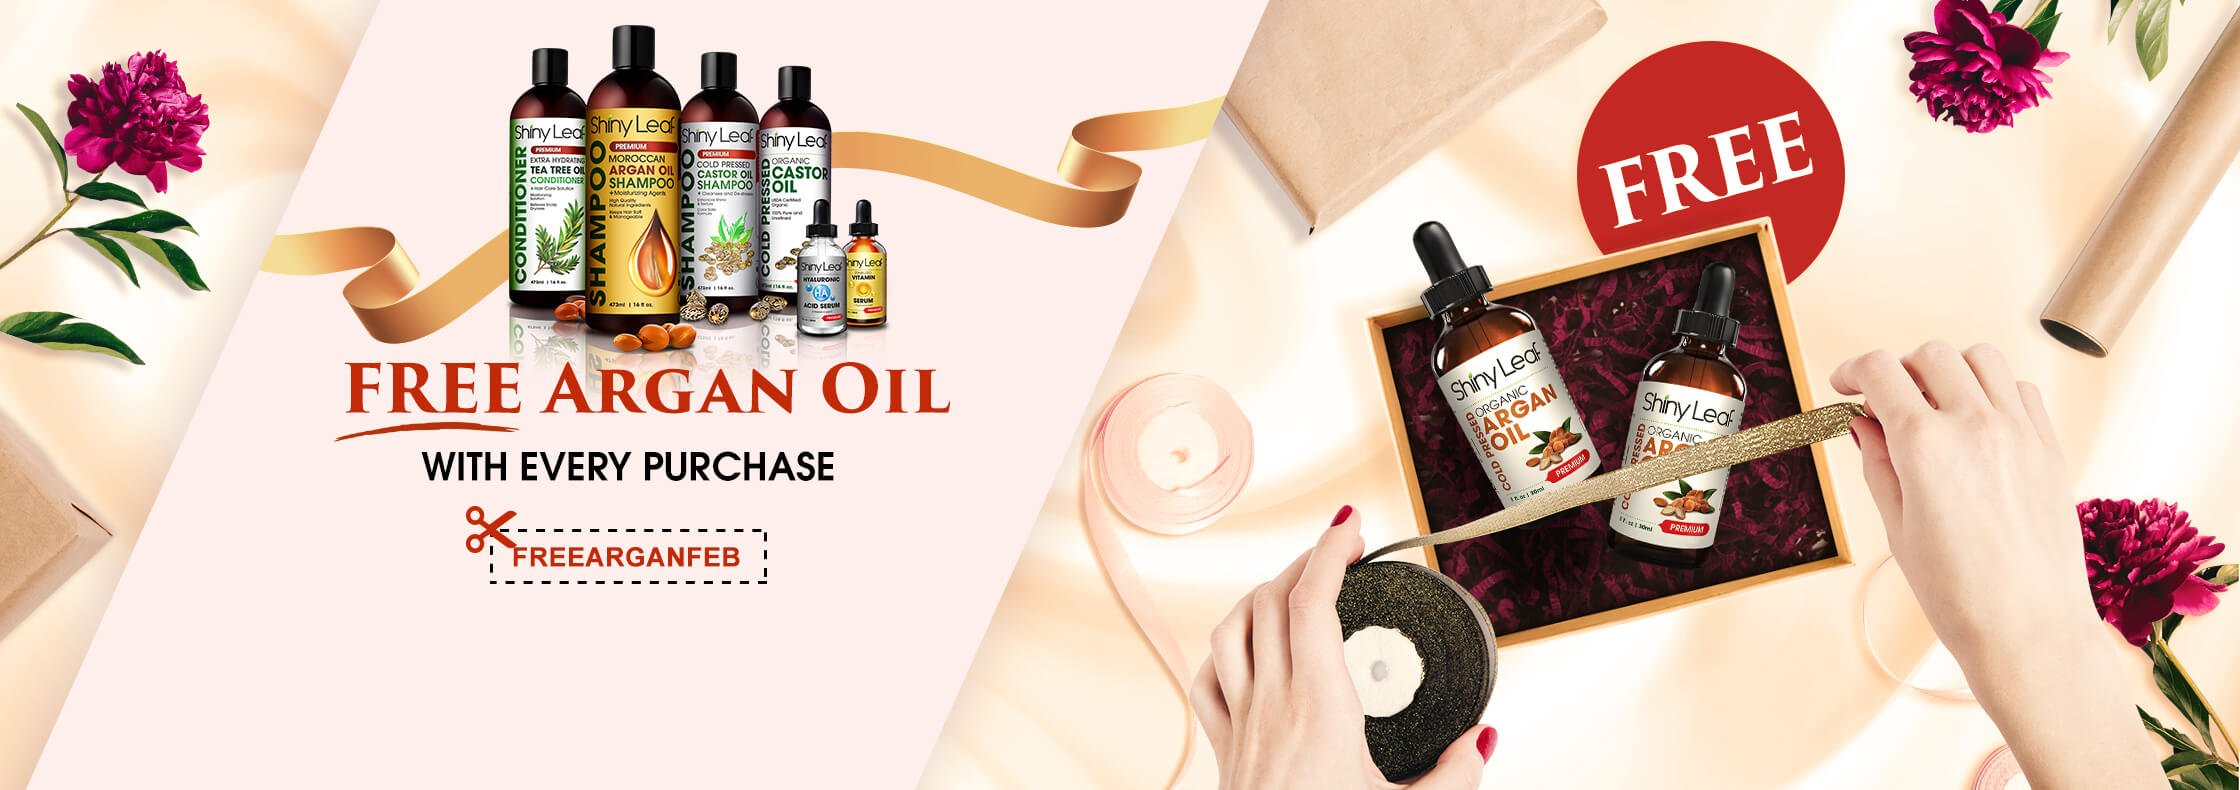 FREE Argan Oil for Every Purchase